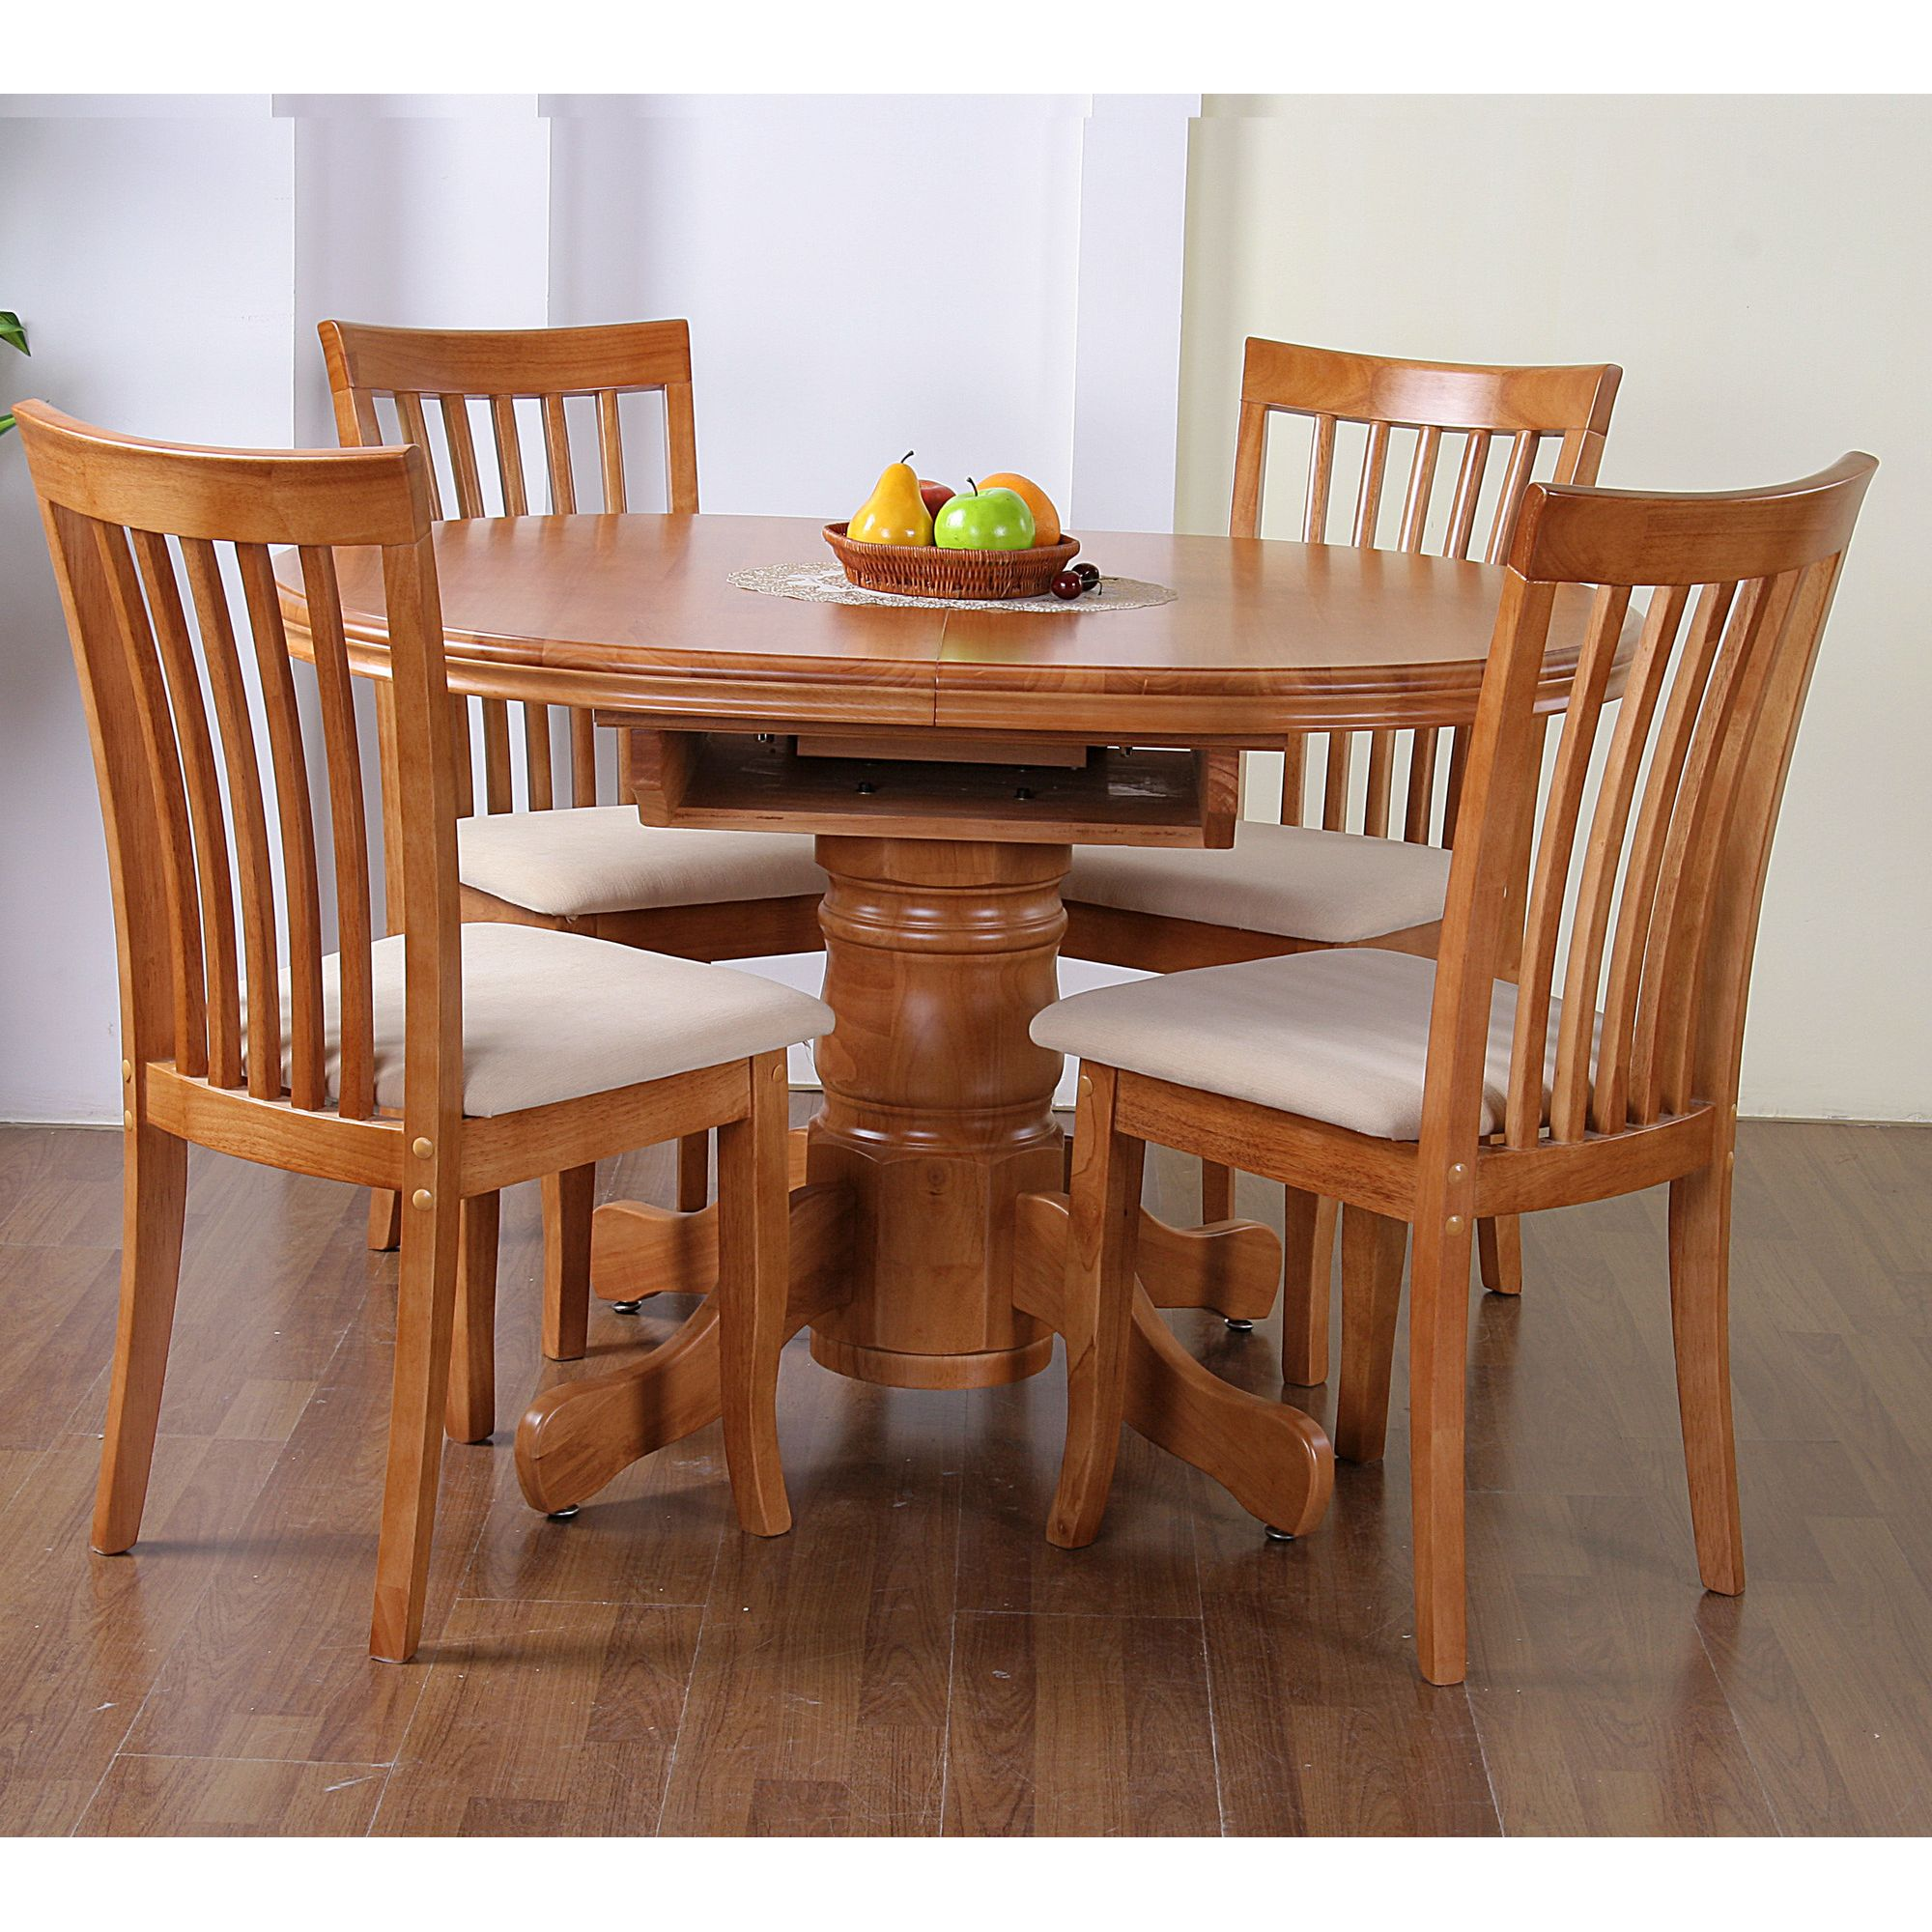 G&P Furniture Windsor House 5-Piece Stratford Oval Flip Top Extending Dining Set - Maple at Tesco Direct